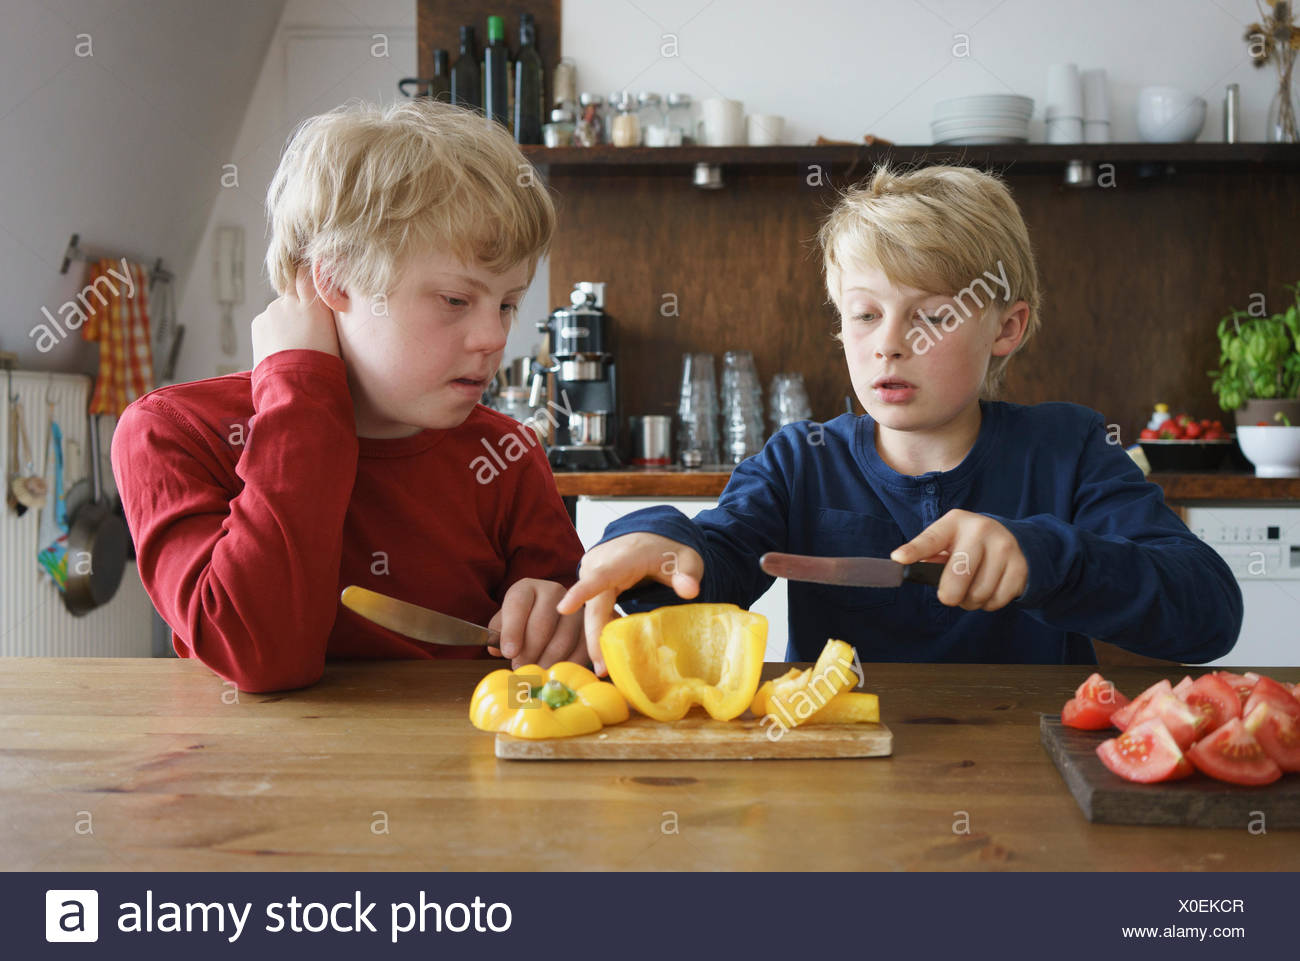 Boy assisting brother to chop bell pepper at table in kitchen Stock